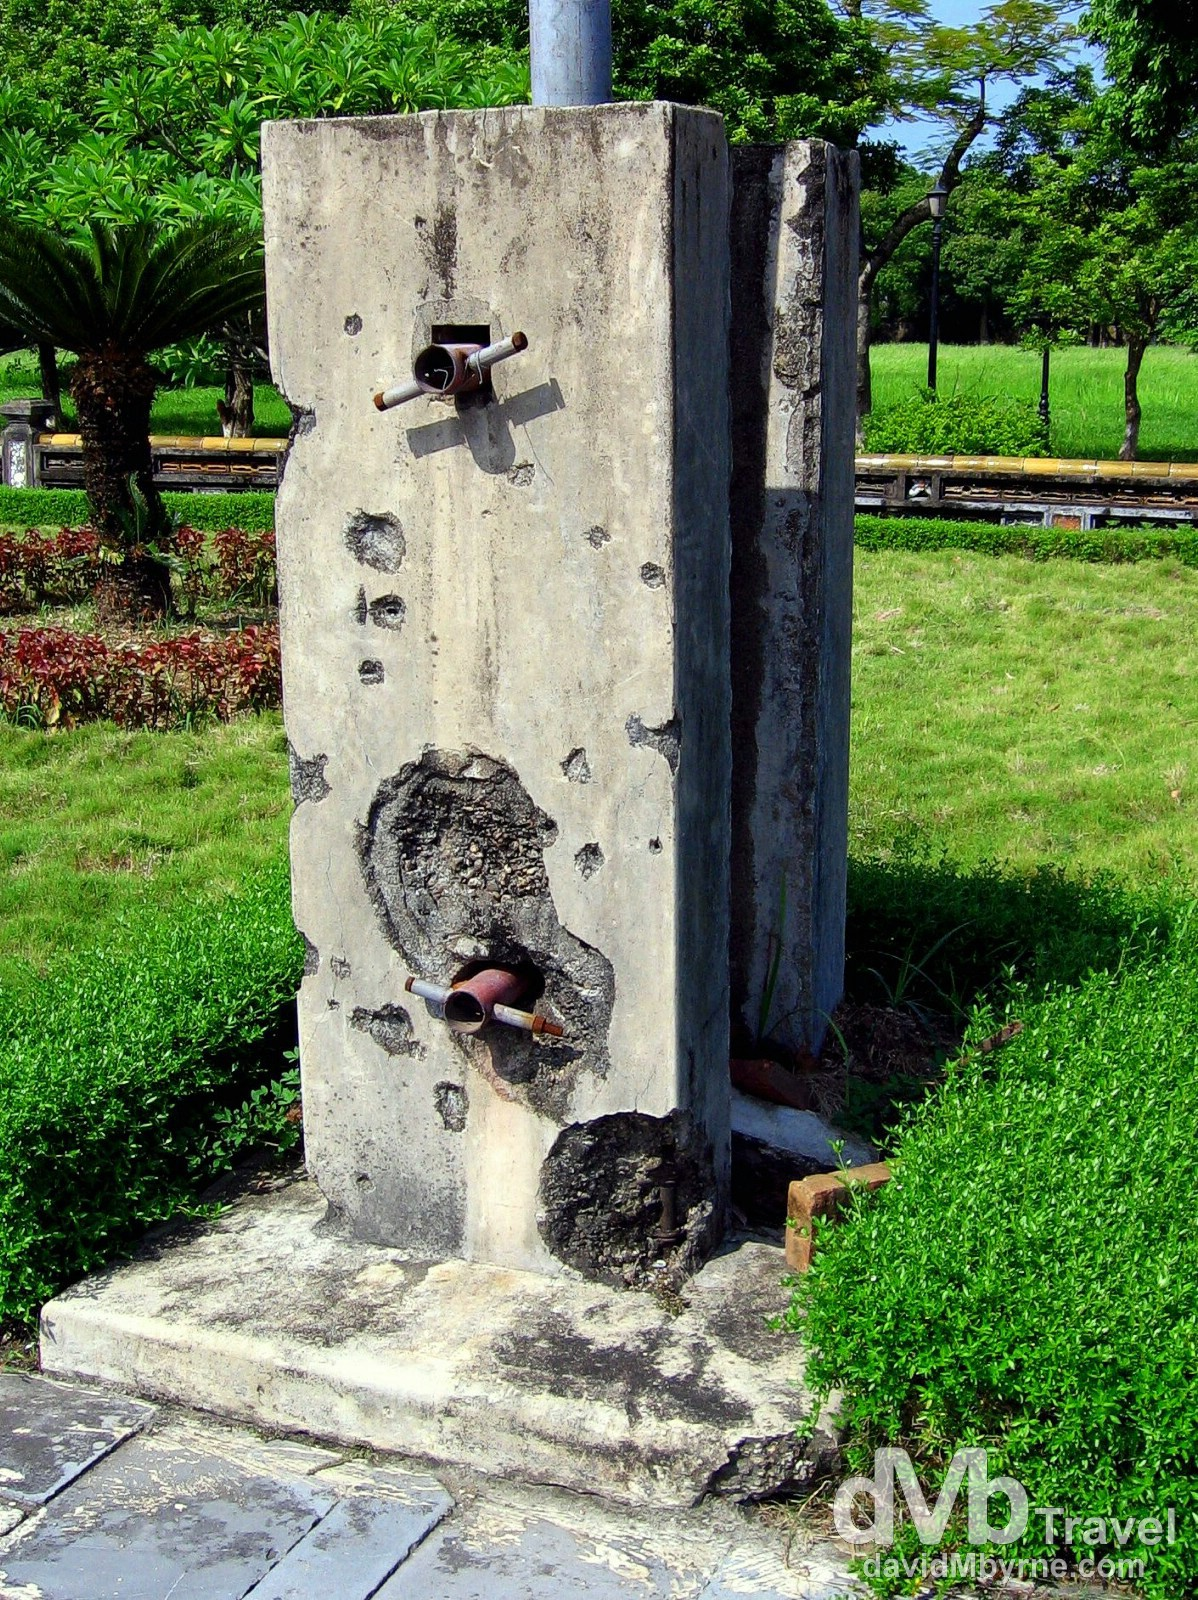 Damage from the warring past visible in the grounds of the UNESCO-listed Citadel in Hue, Central Vietnam. September 7th, 2005.